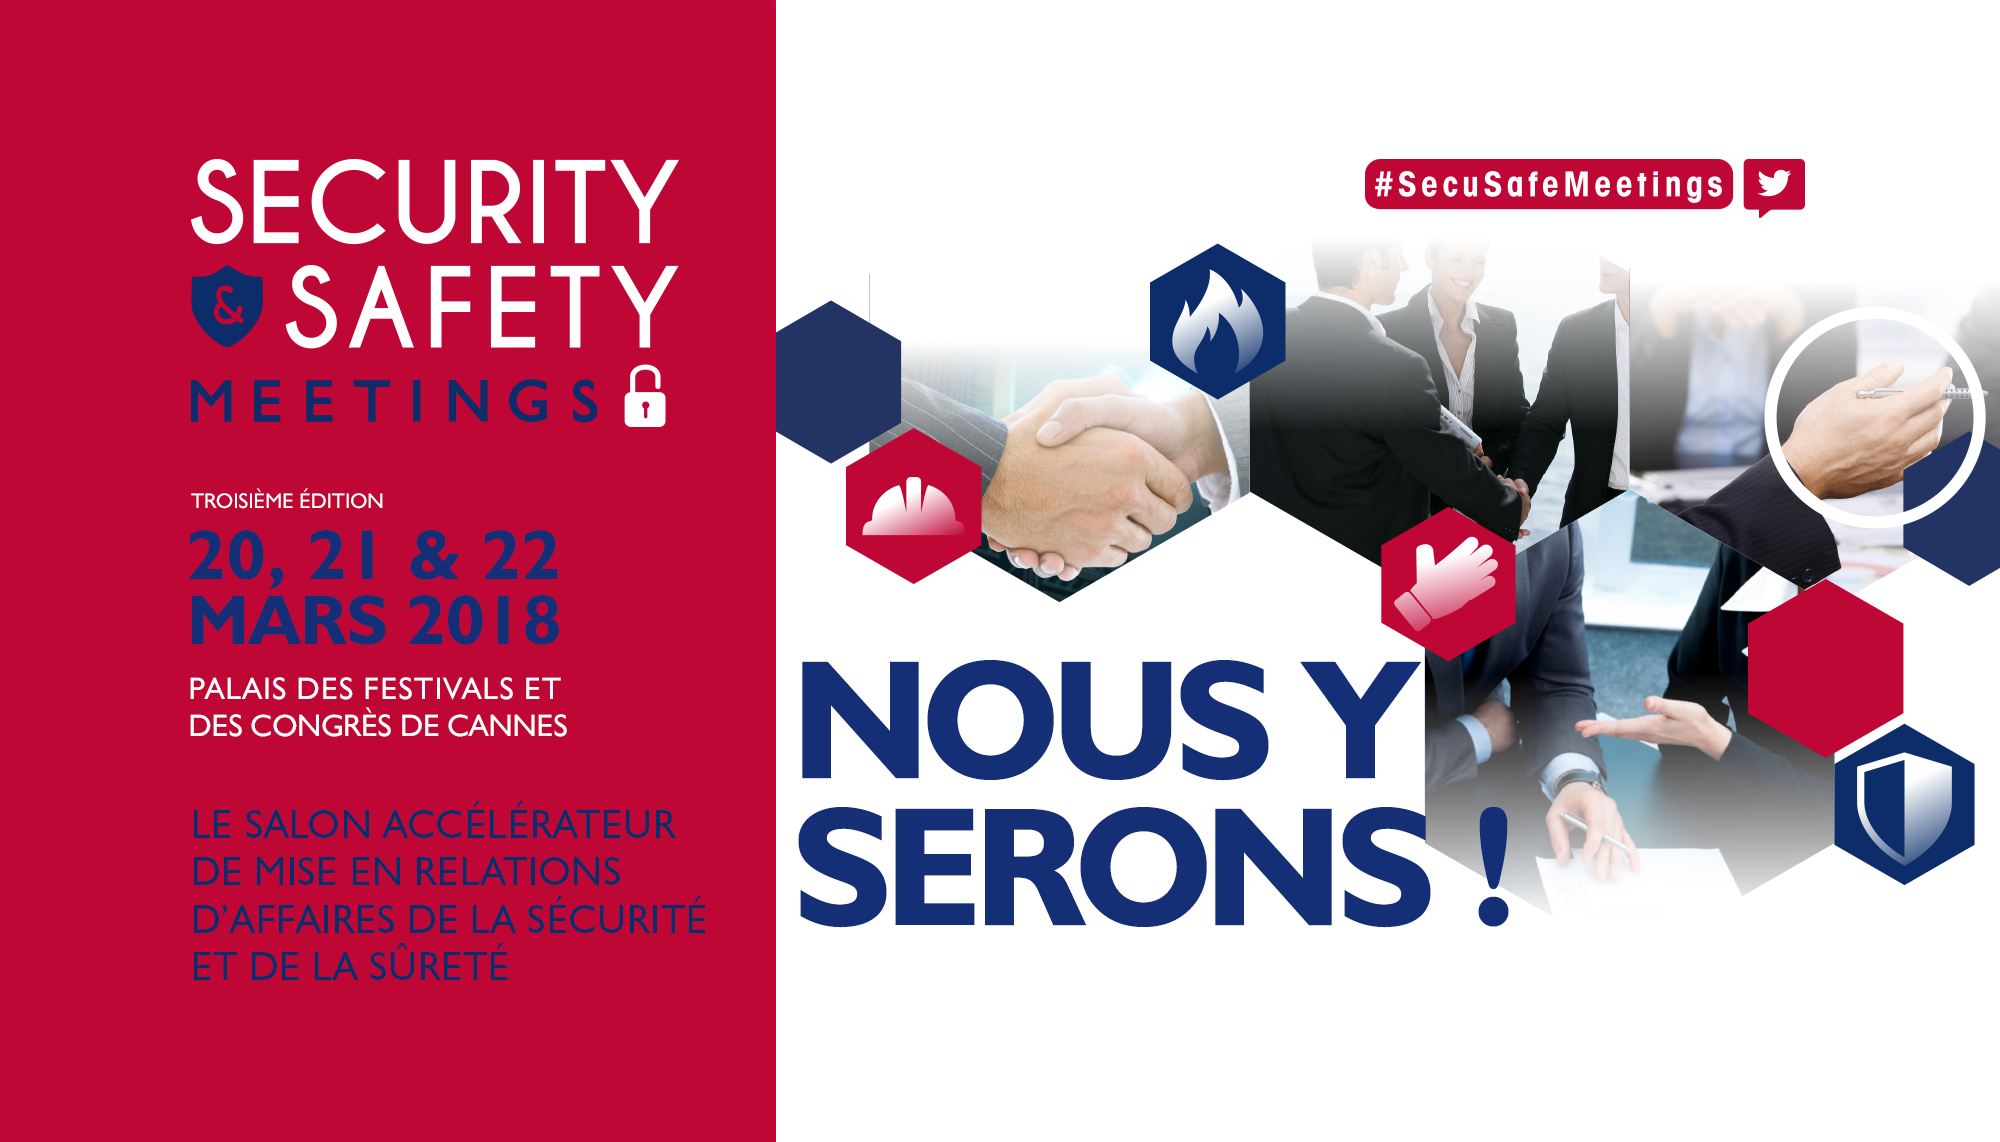 Security & Safety Meetings 2018